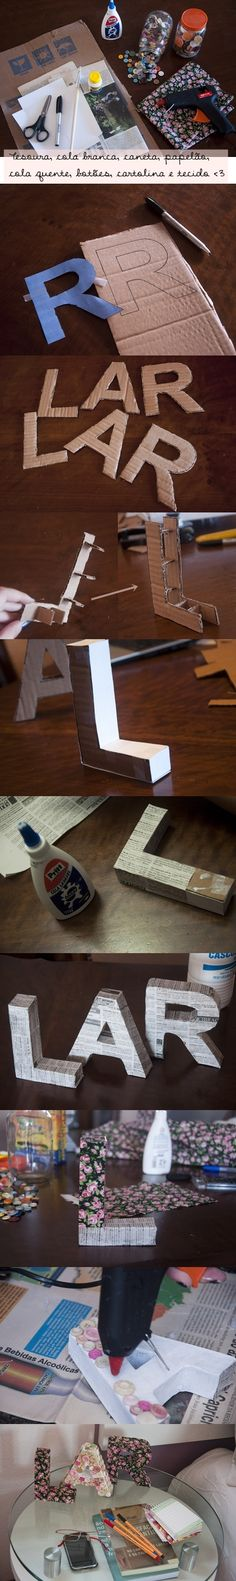 DIY - decorated letters - home decor idea Cardboard Letters, 3d Letters, Initial Letters, Diy And Crafts, Paper Crafts, Arts And Crafts, Letter Standee, Diy Gifts, Handmade Gifts